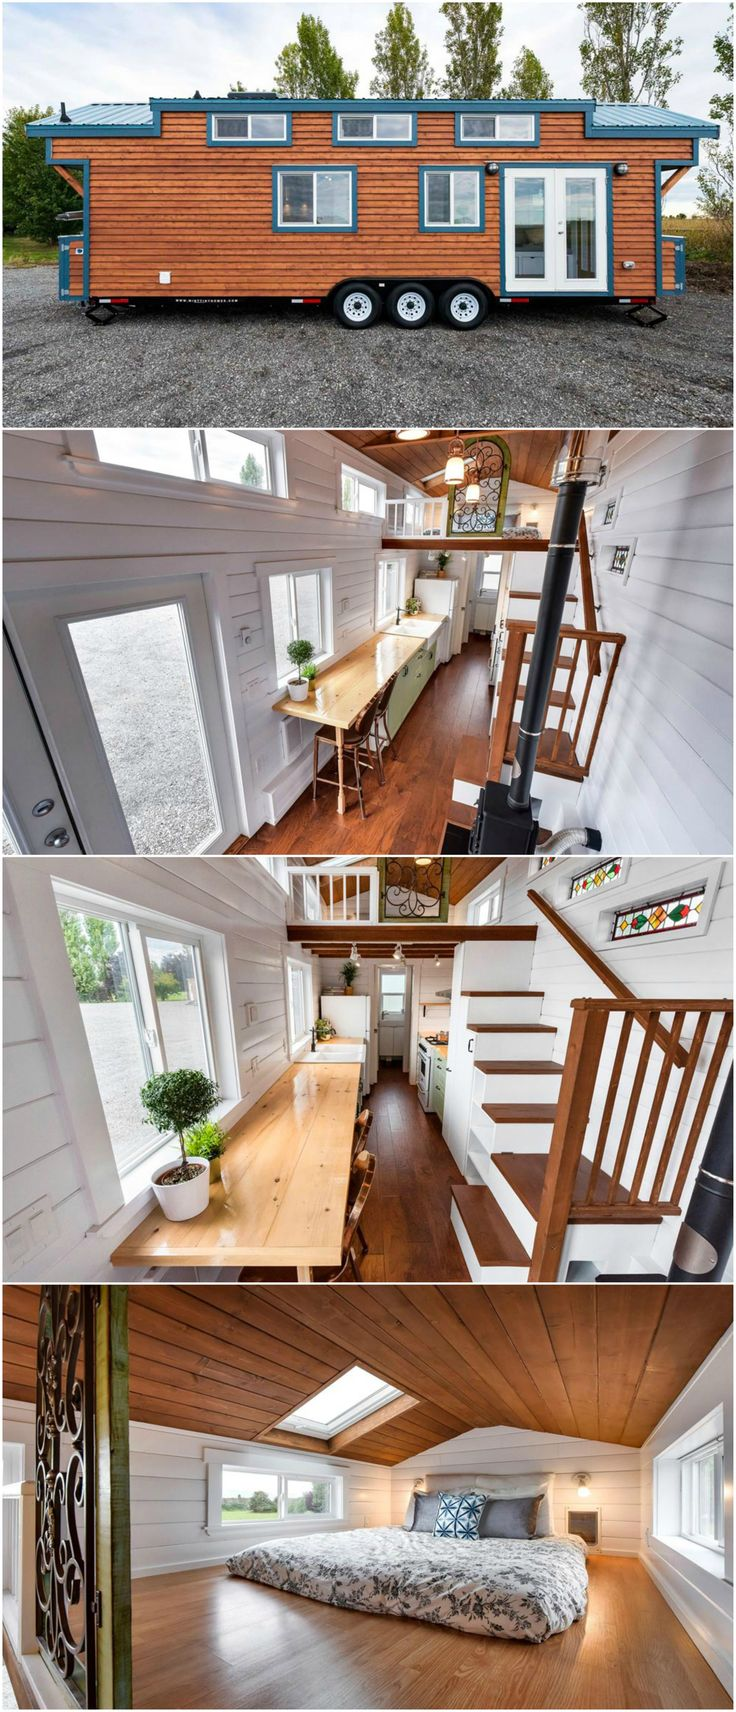 This custom designed 30′ tiny house was built by Mint Tiny Homes in British Columbia, Canada.  The tiny house includes a Hobbit wood stove, corner nook with storage below, and a pull-out larder pantry in the storage staircase. There is also a kitty litter space in the staircase, which is vented outside.  The kitchen features a double ceramic apron sink, custom wood countertops, and full size appliances including a refrigerator, 30″ propane oven with hood vent, and dishwasher.